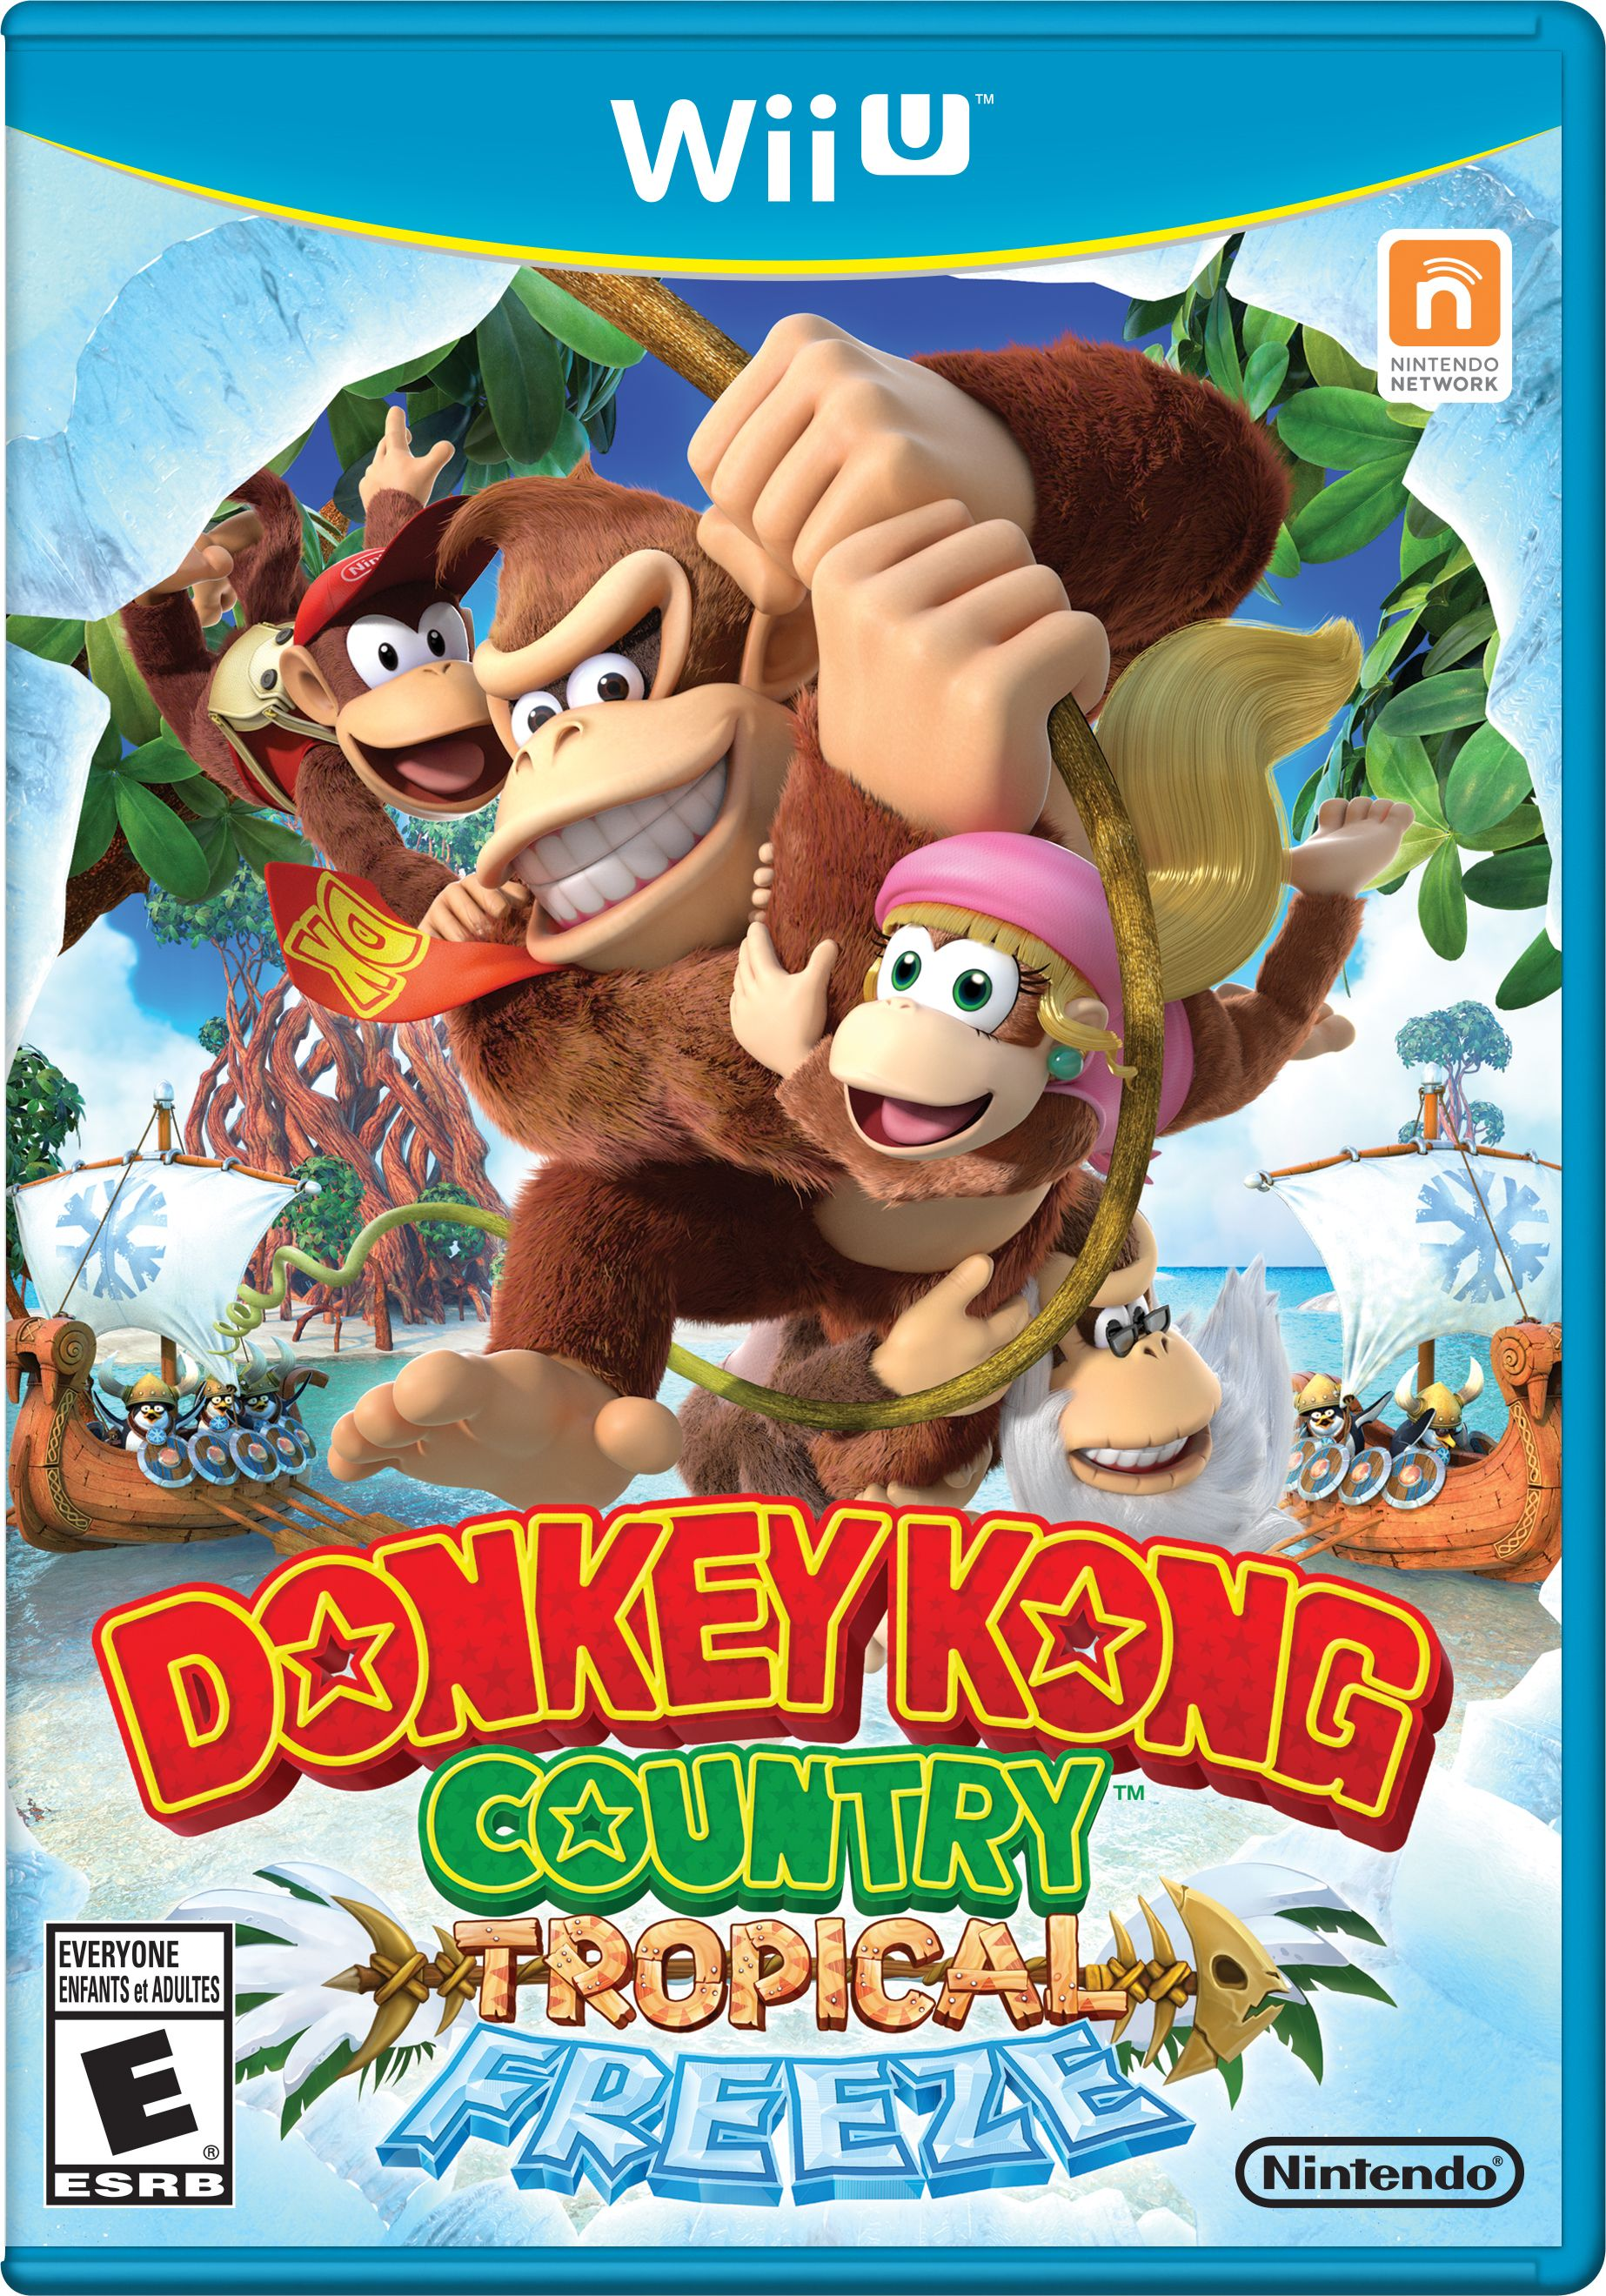 Donkey Kong Country Donkey Kong Country: T...